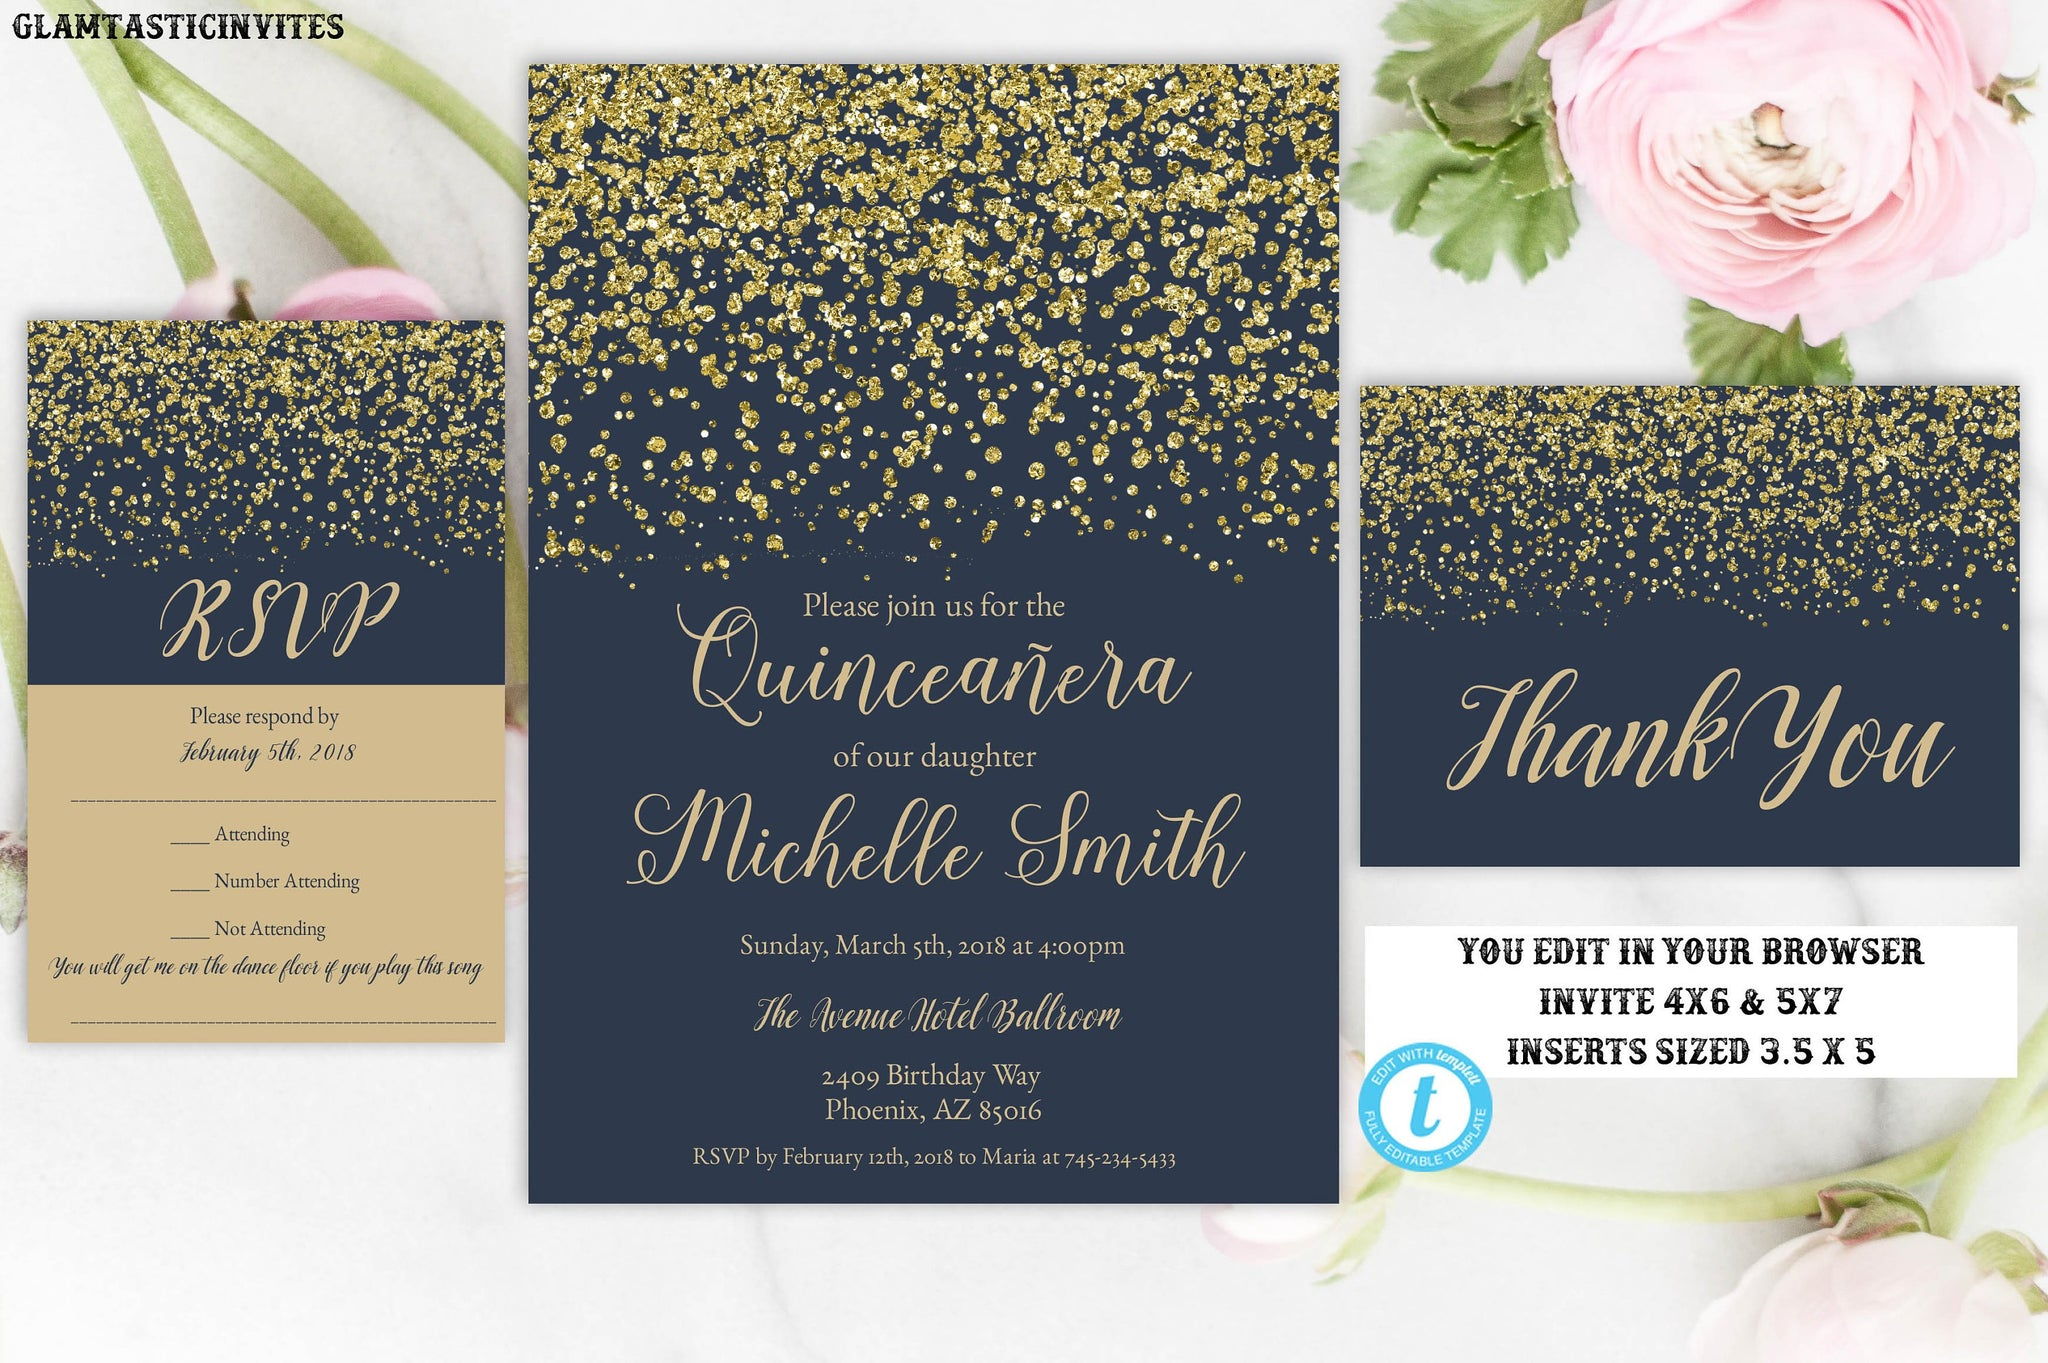 photo regarding Printable Quinceanera Invitations titled Armed forces Blue Gold Quinceañtechnology Invitation Template, Quinceañtechnology Invitation, Quinceañtechnology, Instantaneous Obtain, Editable, Printable, Lovable 15 Invite